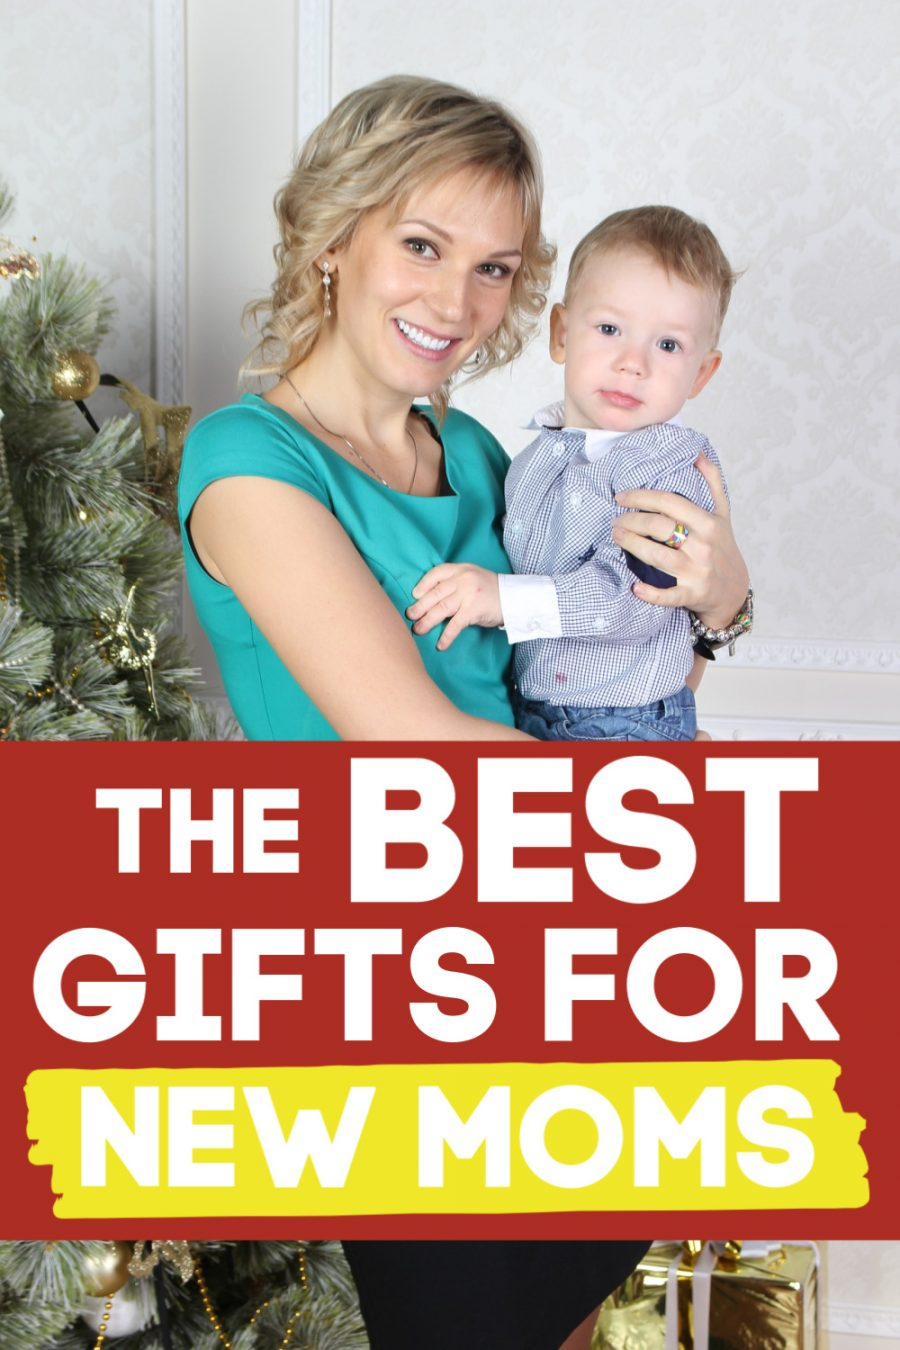 The BEST Gifts for New Moms